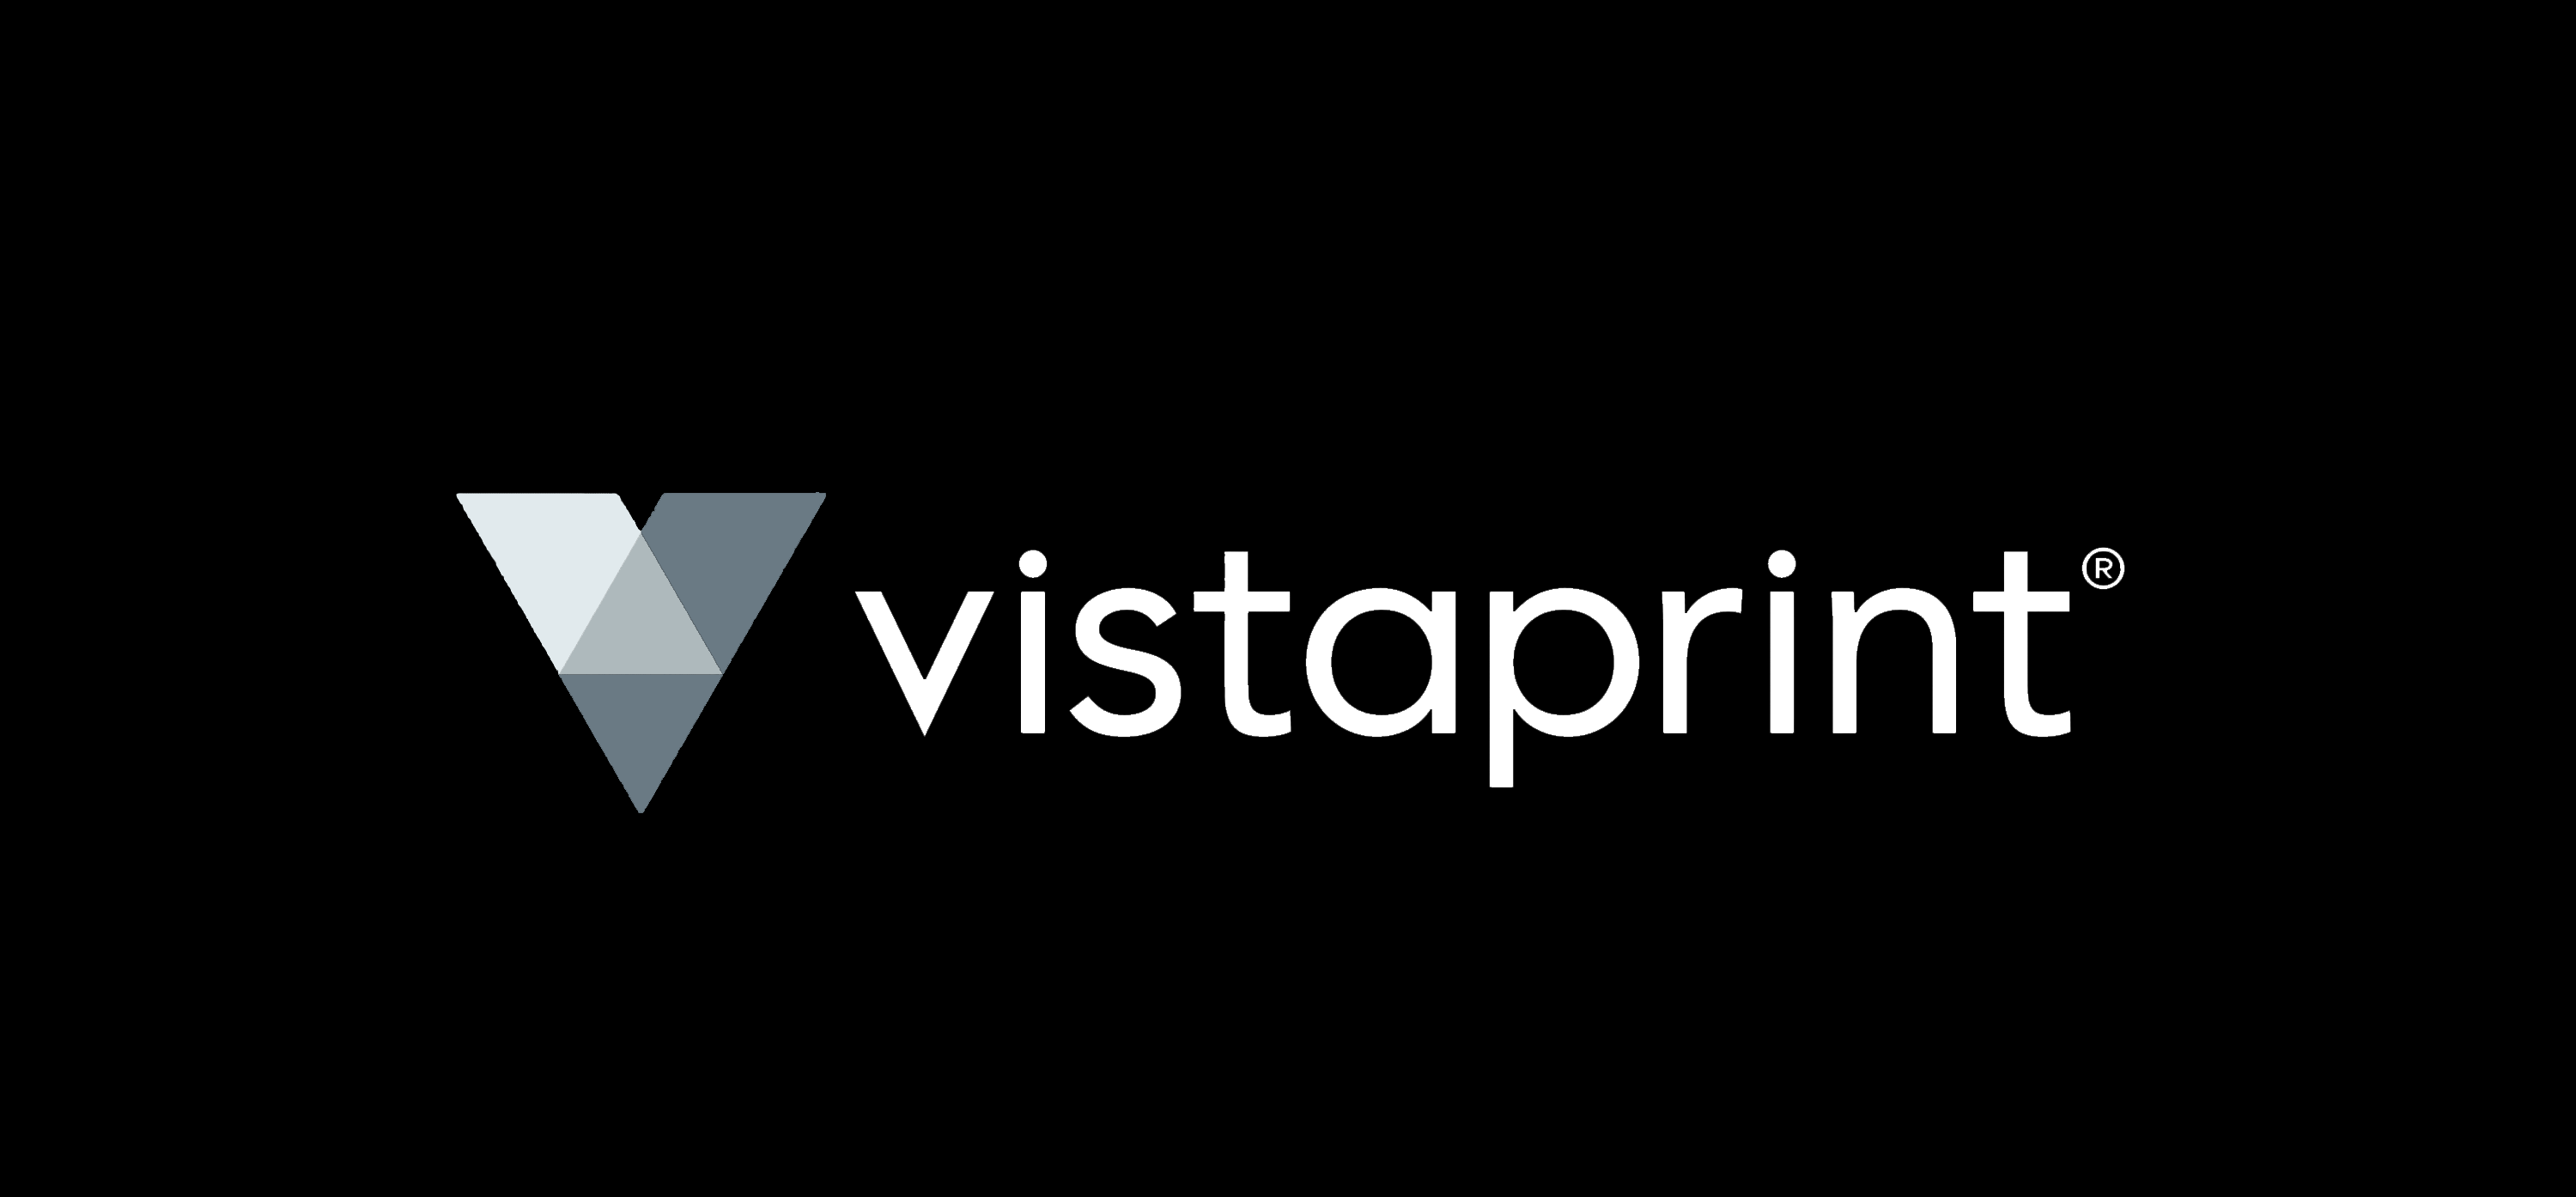 Vistaprint_Logo_BW